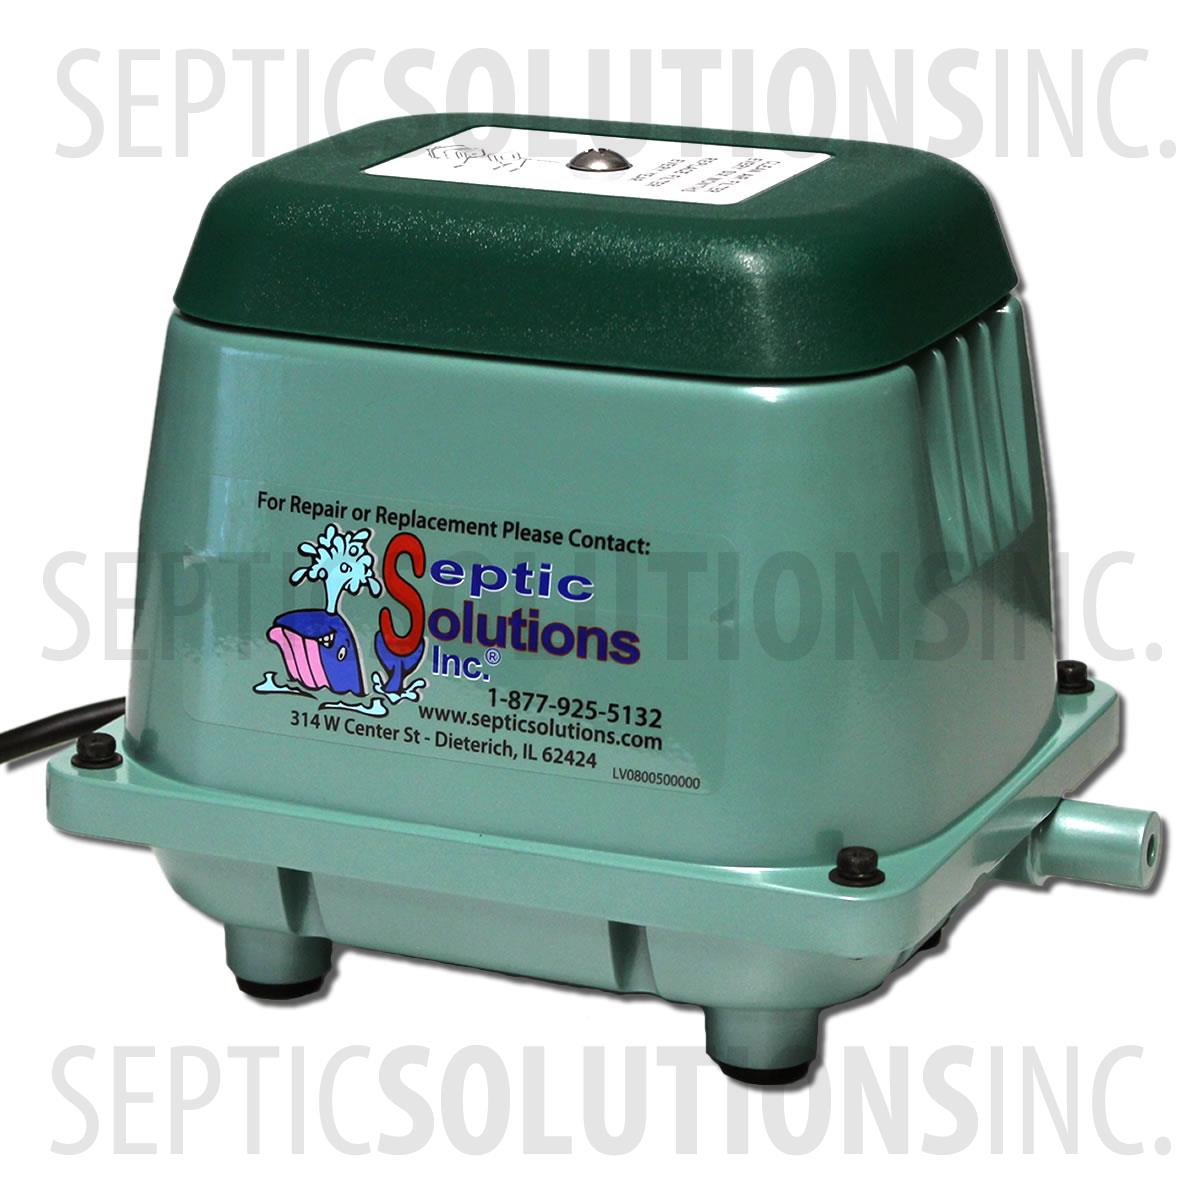 Image Result For Septic System Alarm